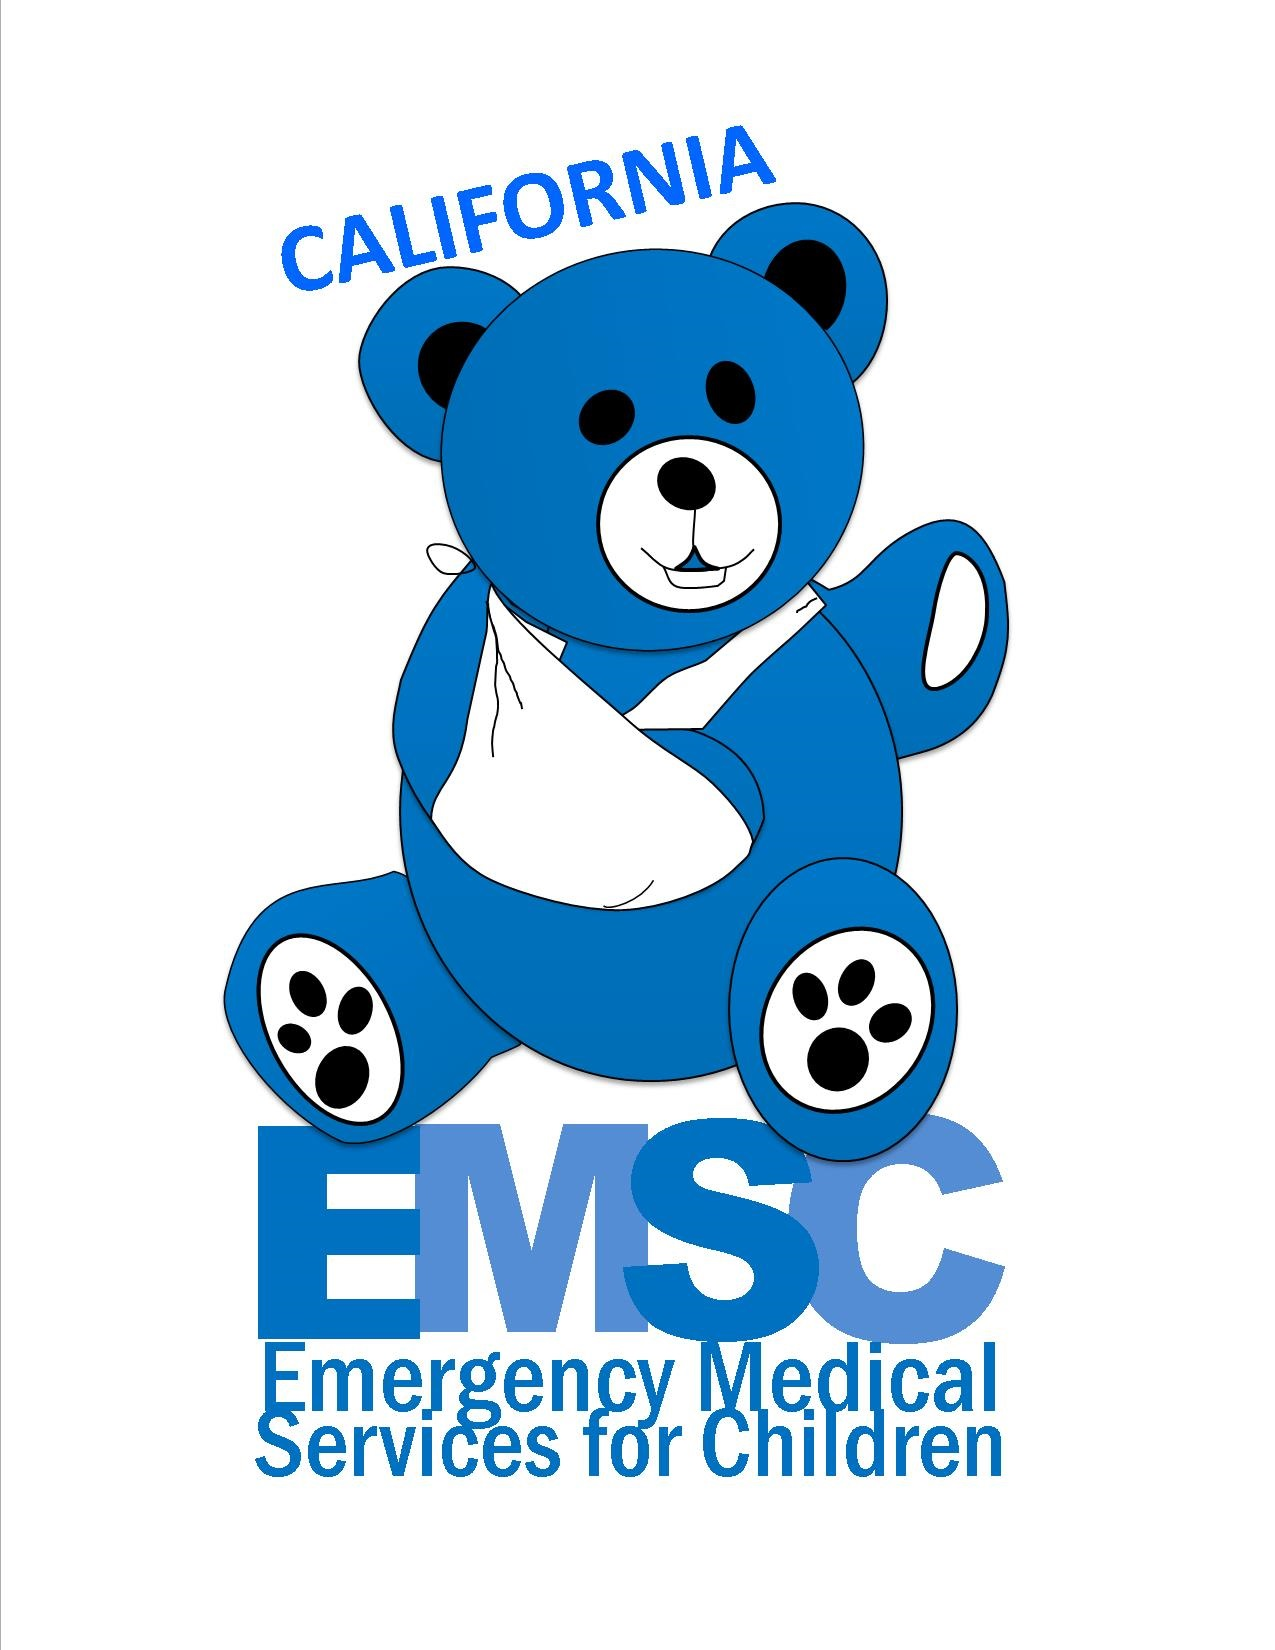 California Emergency Medical Services for Children